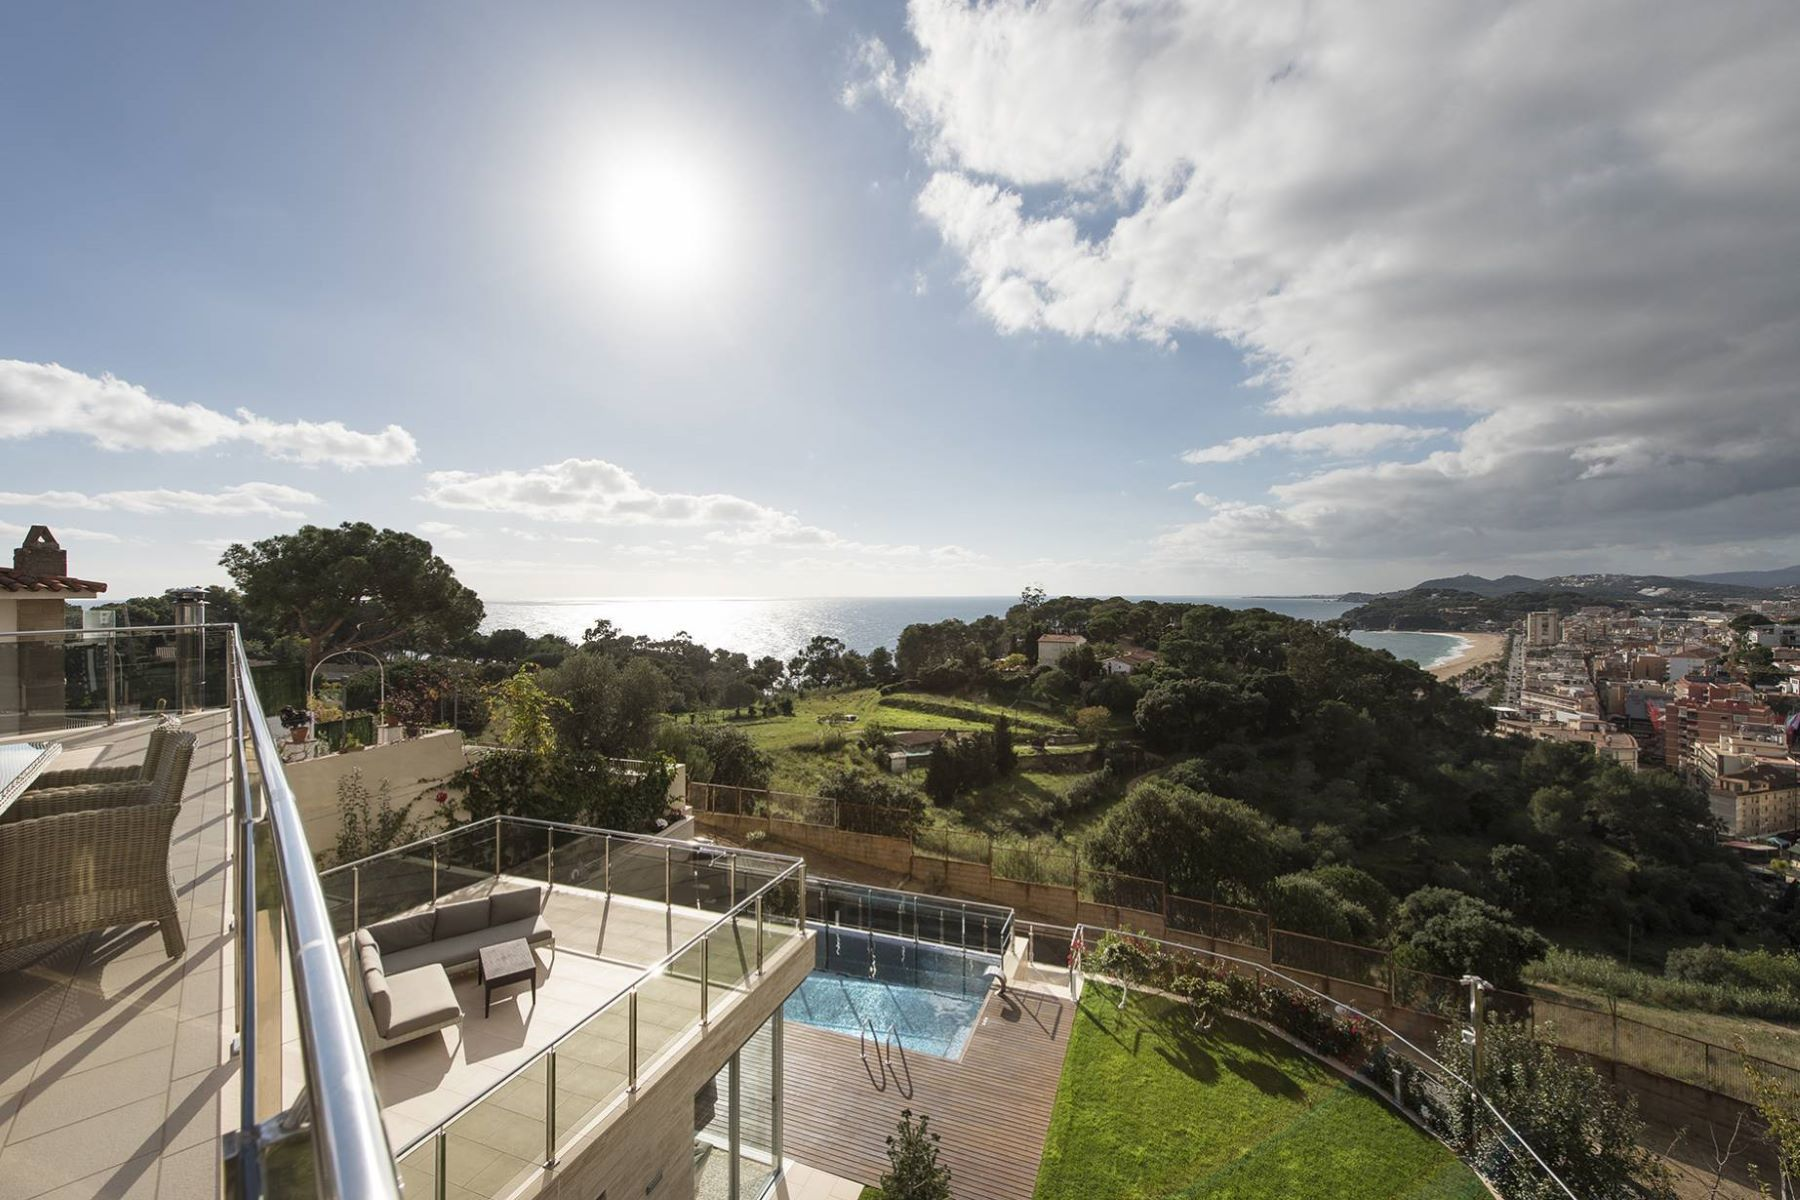 Single Family Home for Sale at New luxury villa with sea views, 400 m from a small bay Lloret De Mar, Costa Brava, 17310 Spain